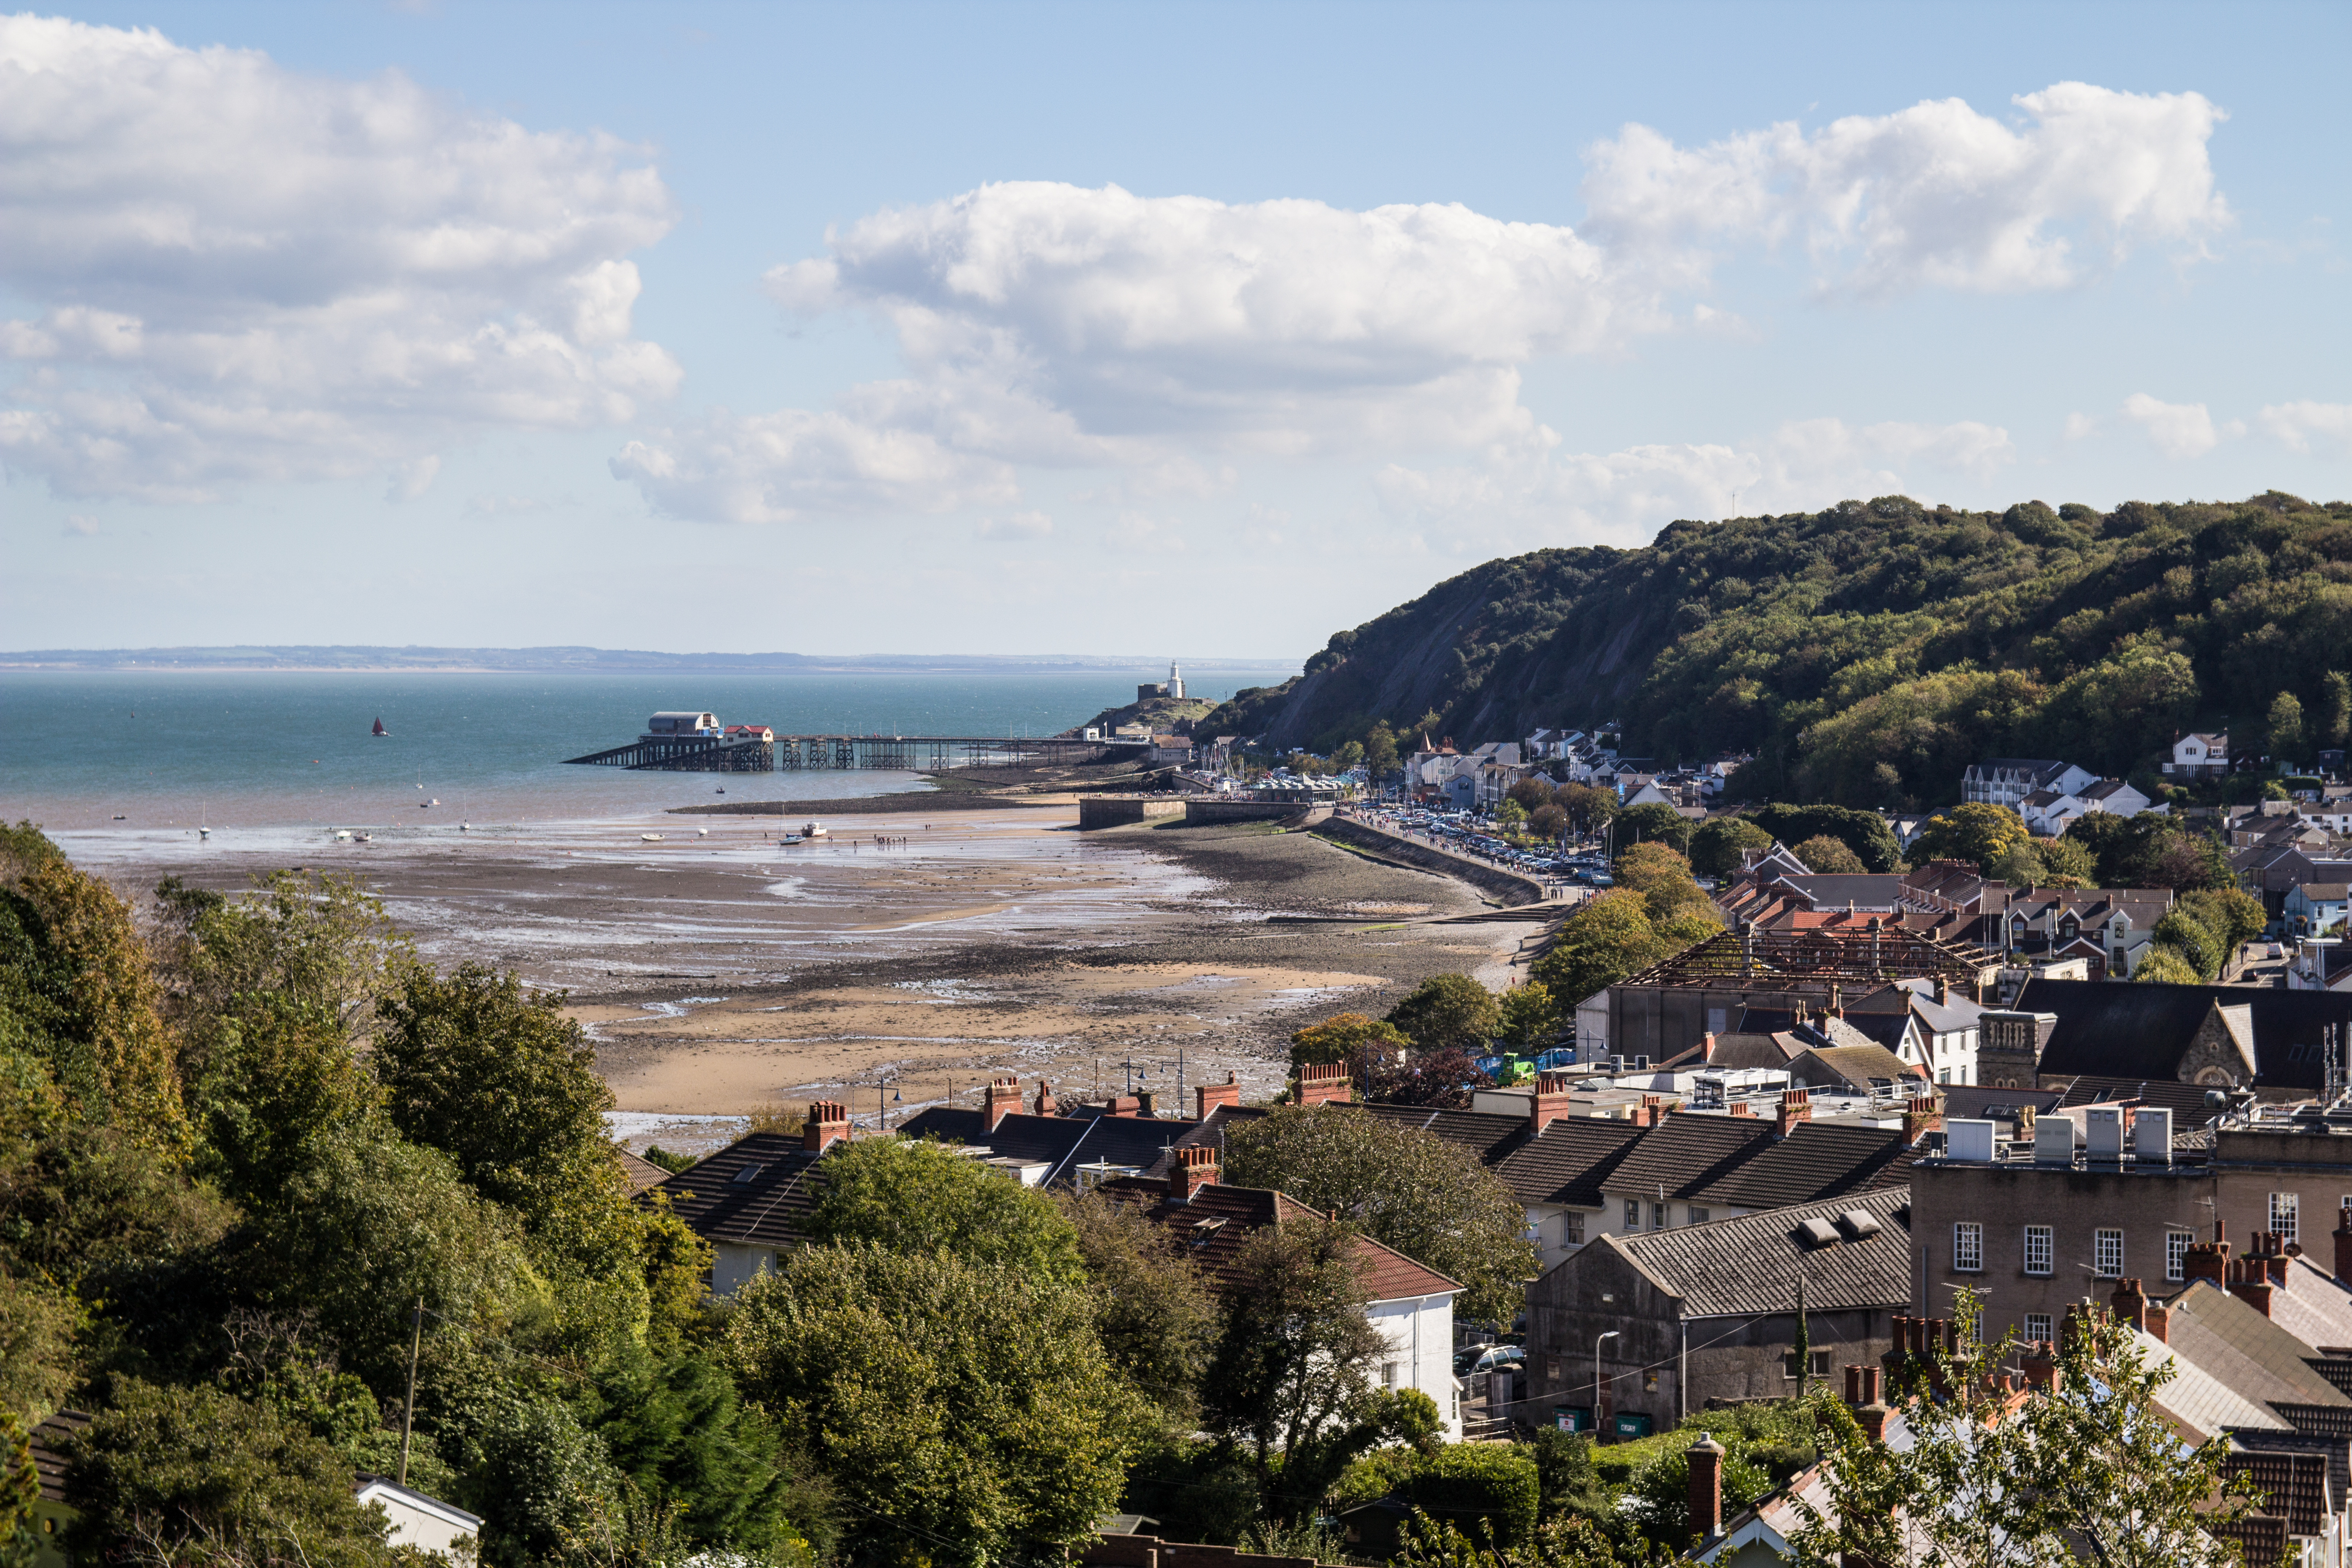 Coastal town in Wales by the Sea